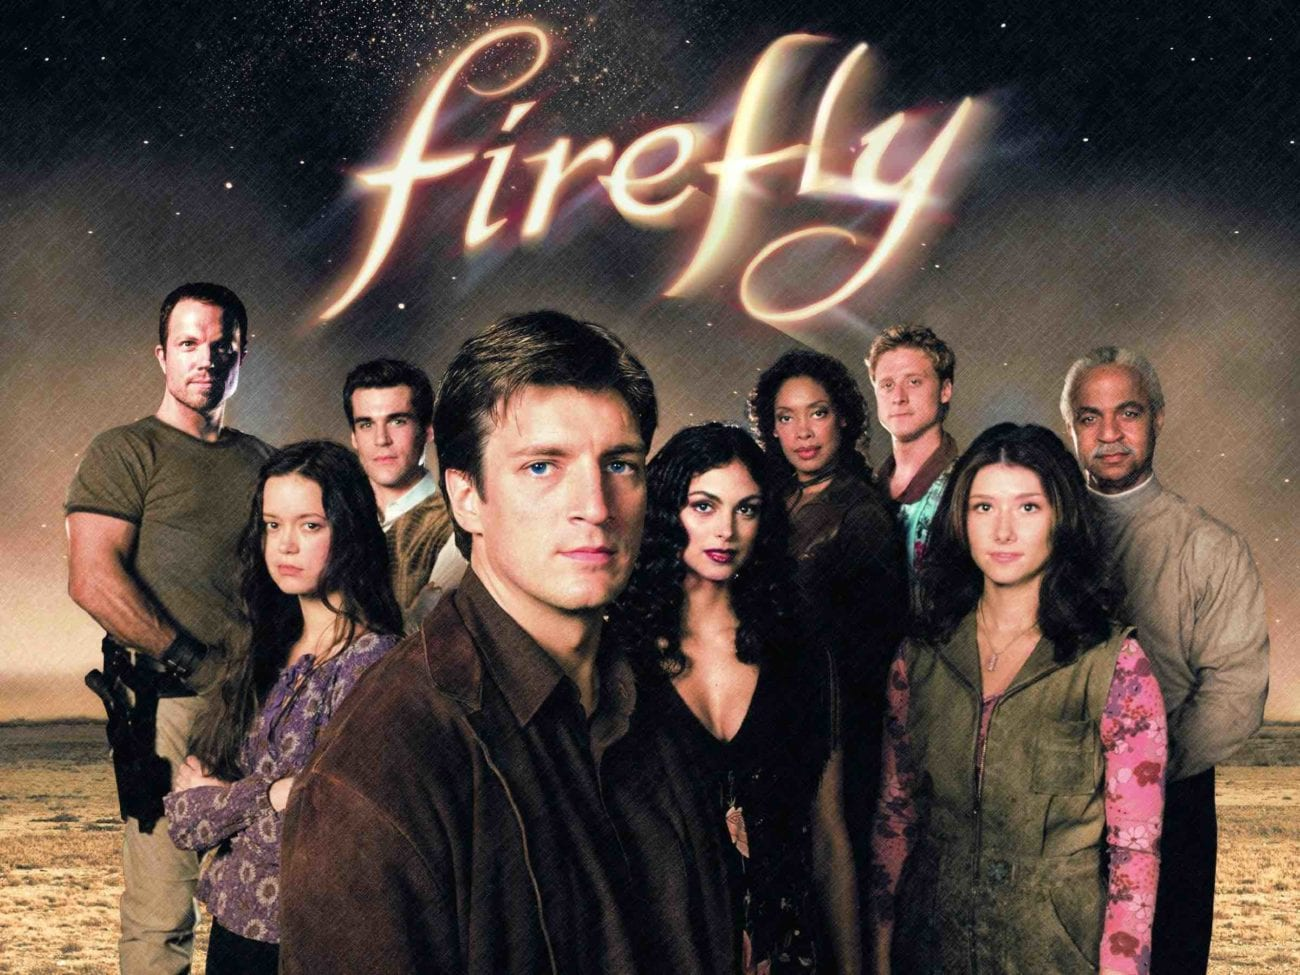 Let's revisit ancient history and start weeping anew at the legendary show. Test your 'Firefly' knowledge with Film Daily's exclusive quiz. Shiny? Shiny.